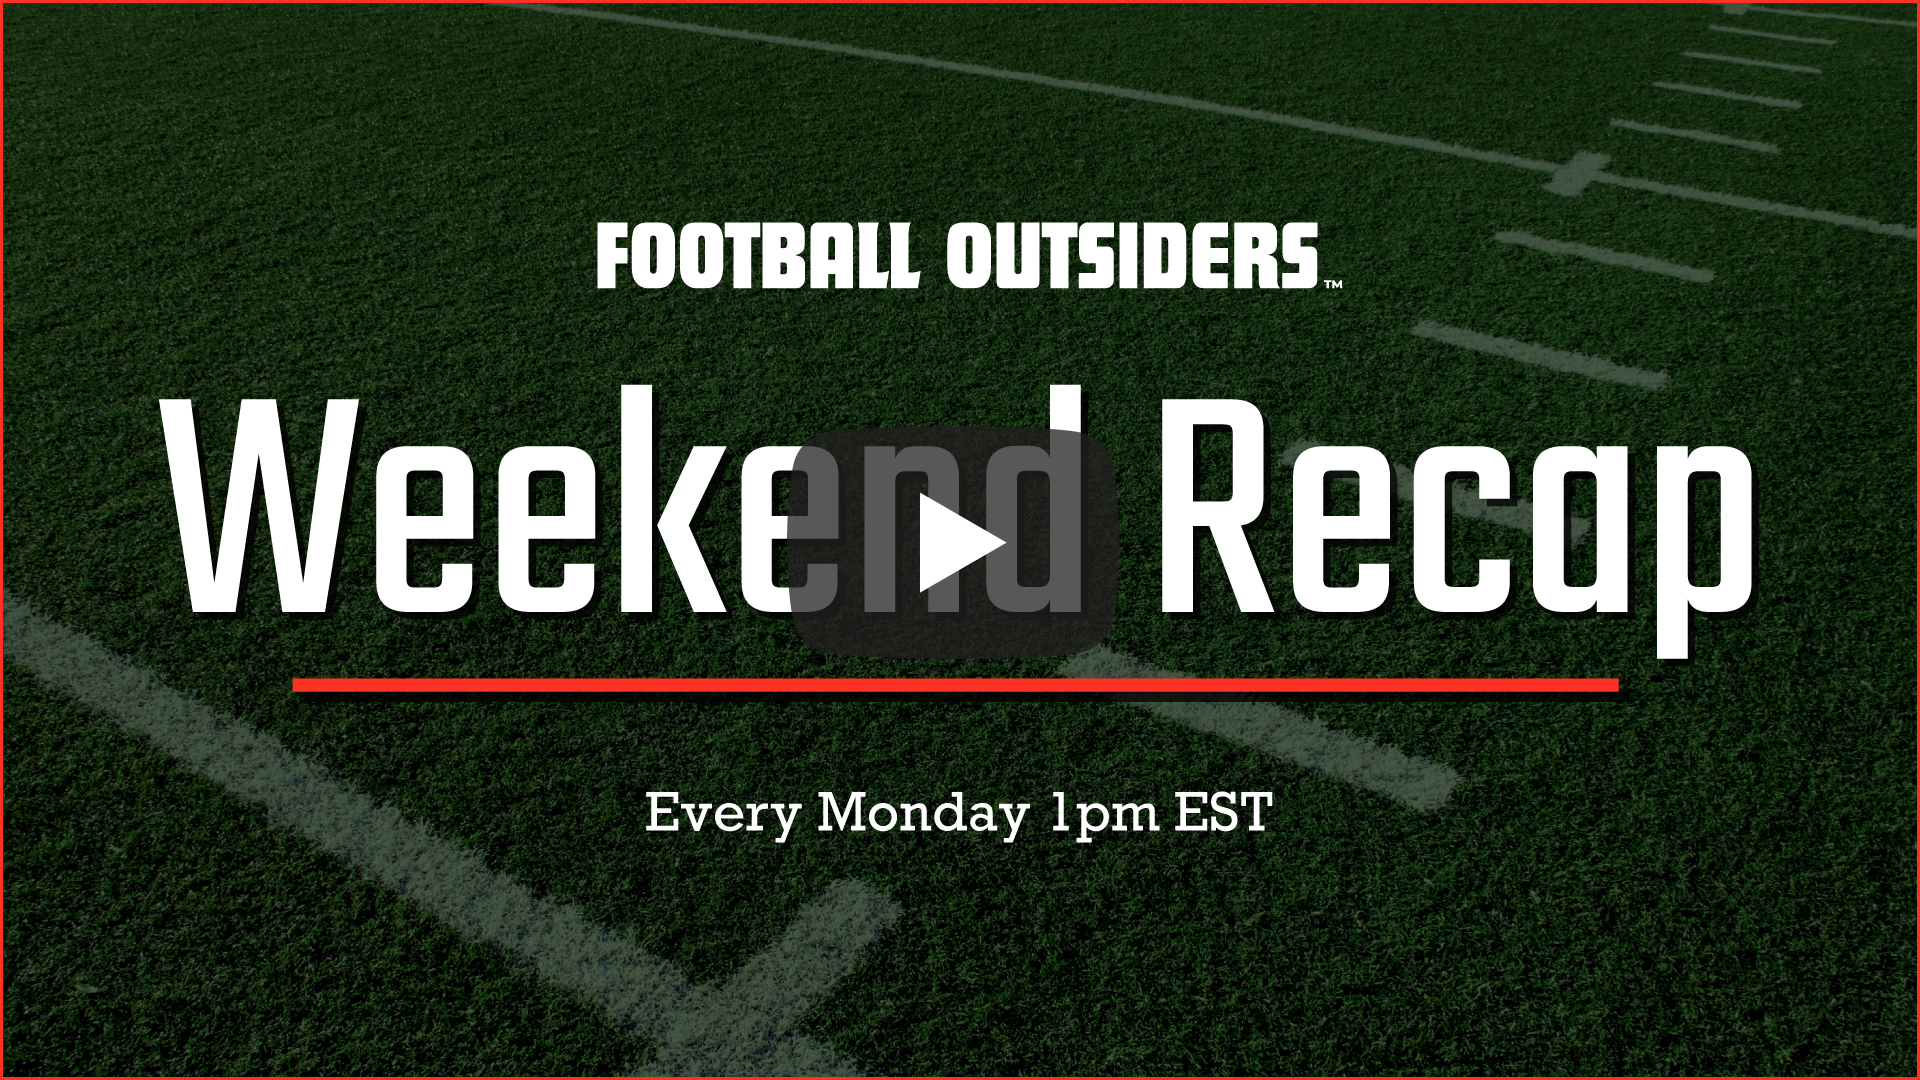 NFL Week 7 Review with Ian O'Connor from EdjSports